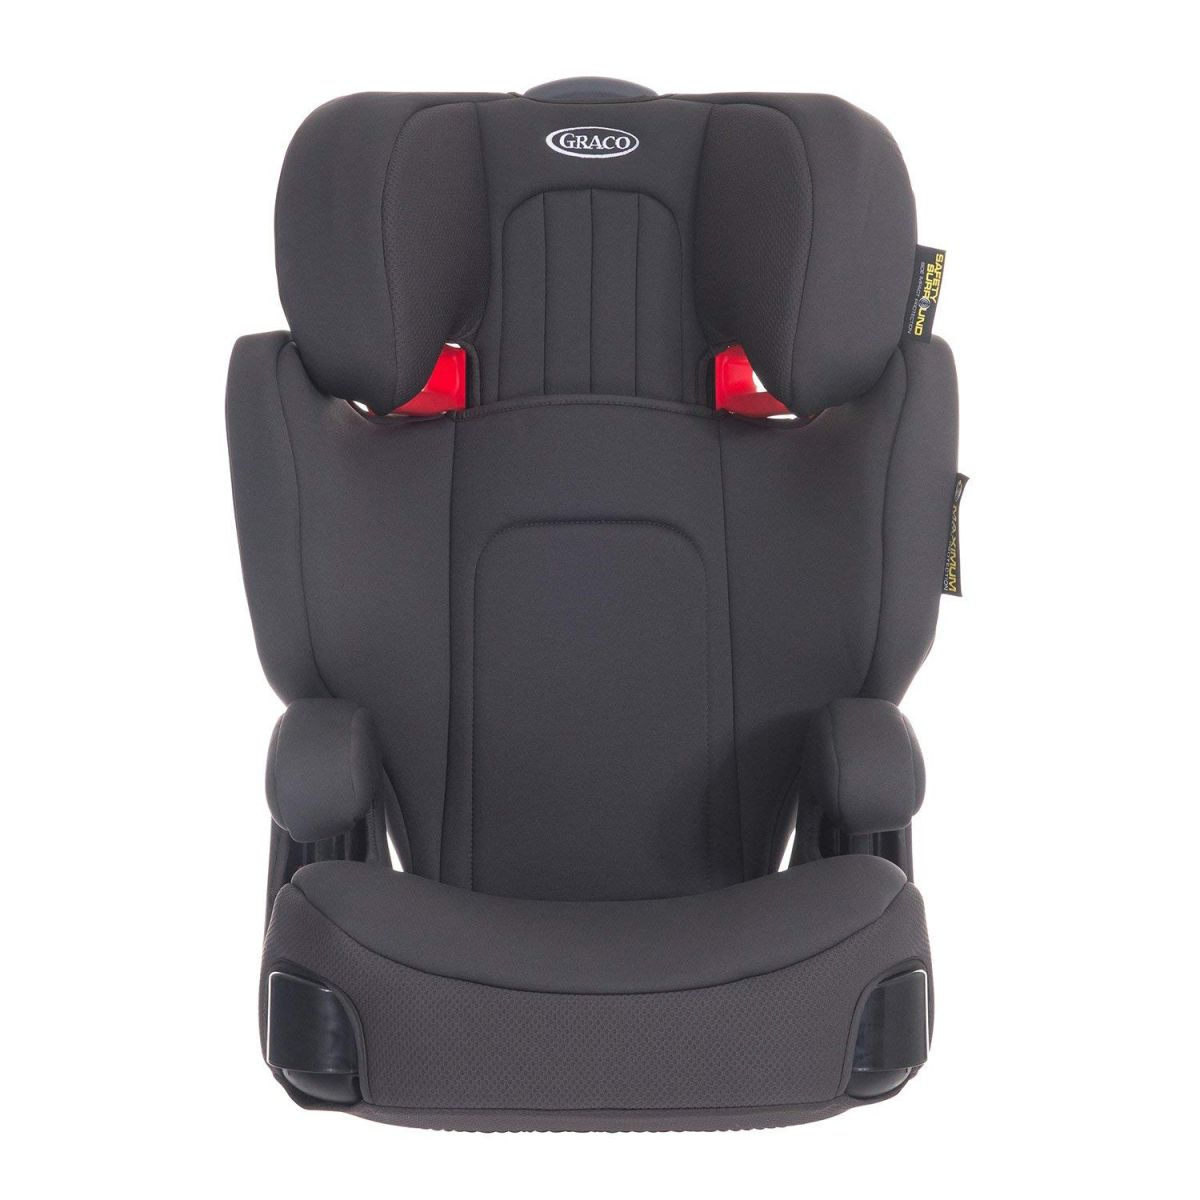 Stage 2 Car Seat With Base Save A Massive 30 On Graco Child Car Seats In Amazon S